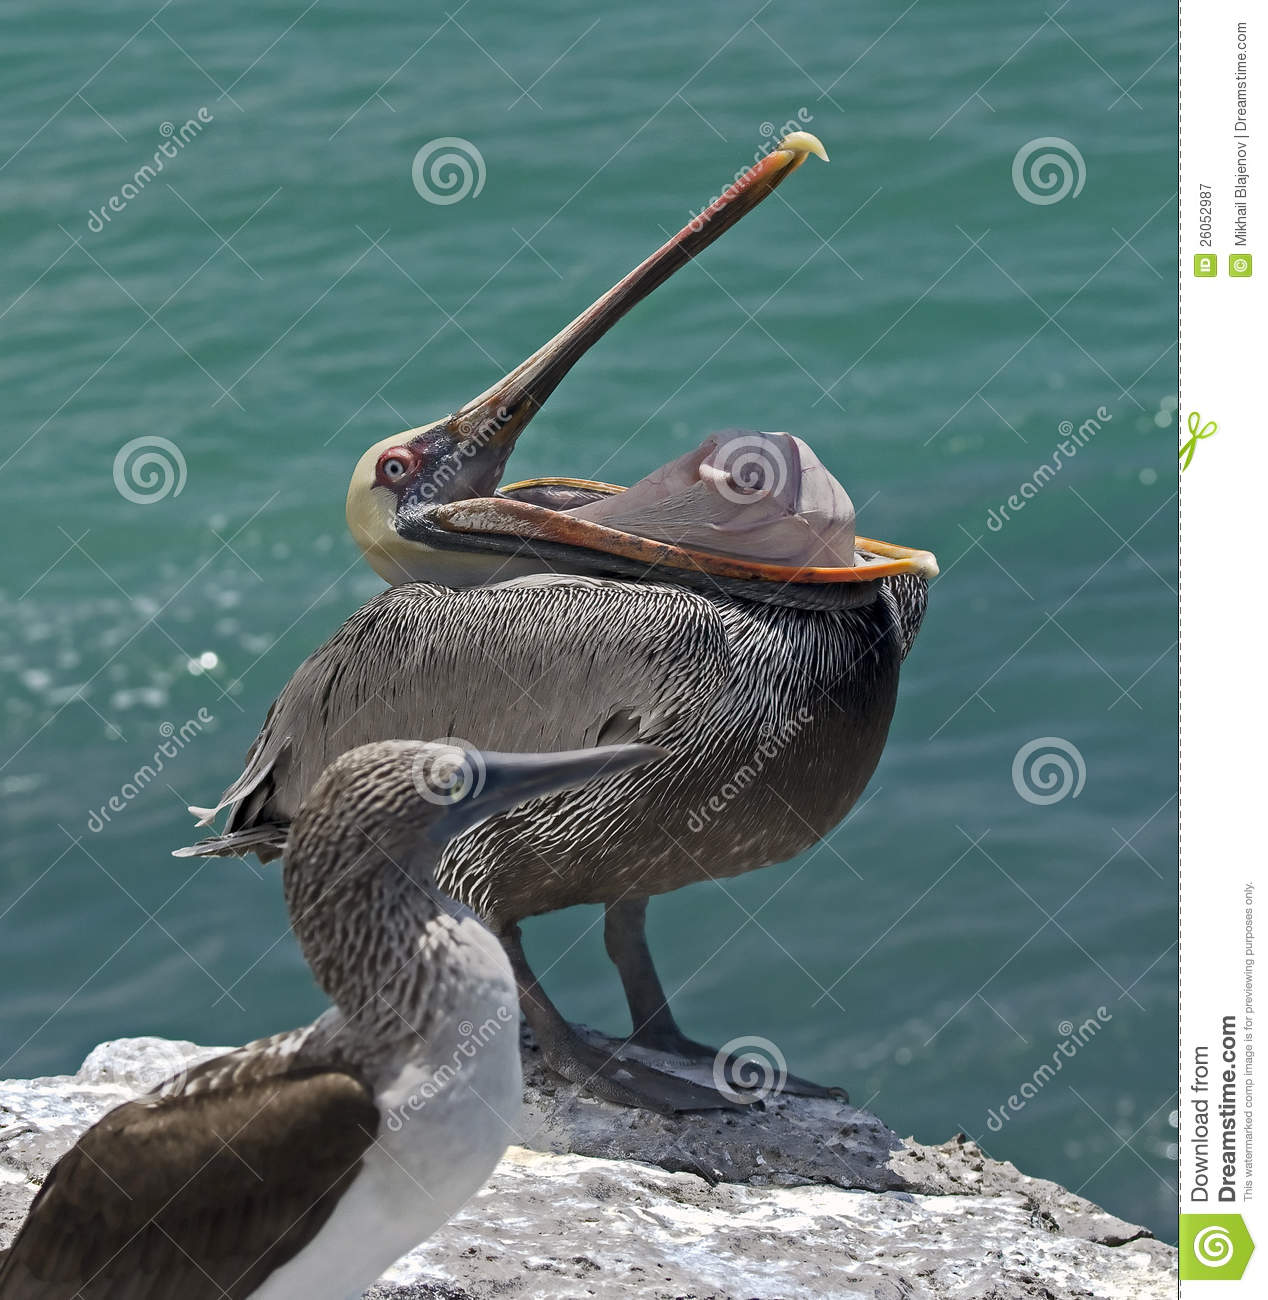 Pelican on the rock 3 stock image. Image of galapagos ...